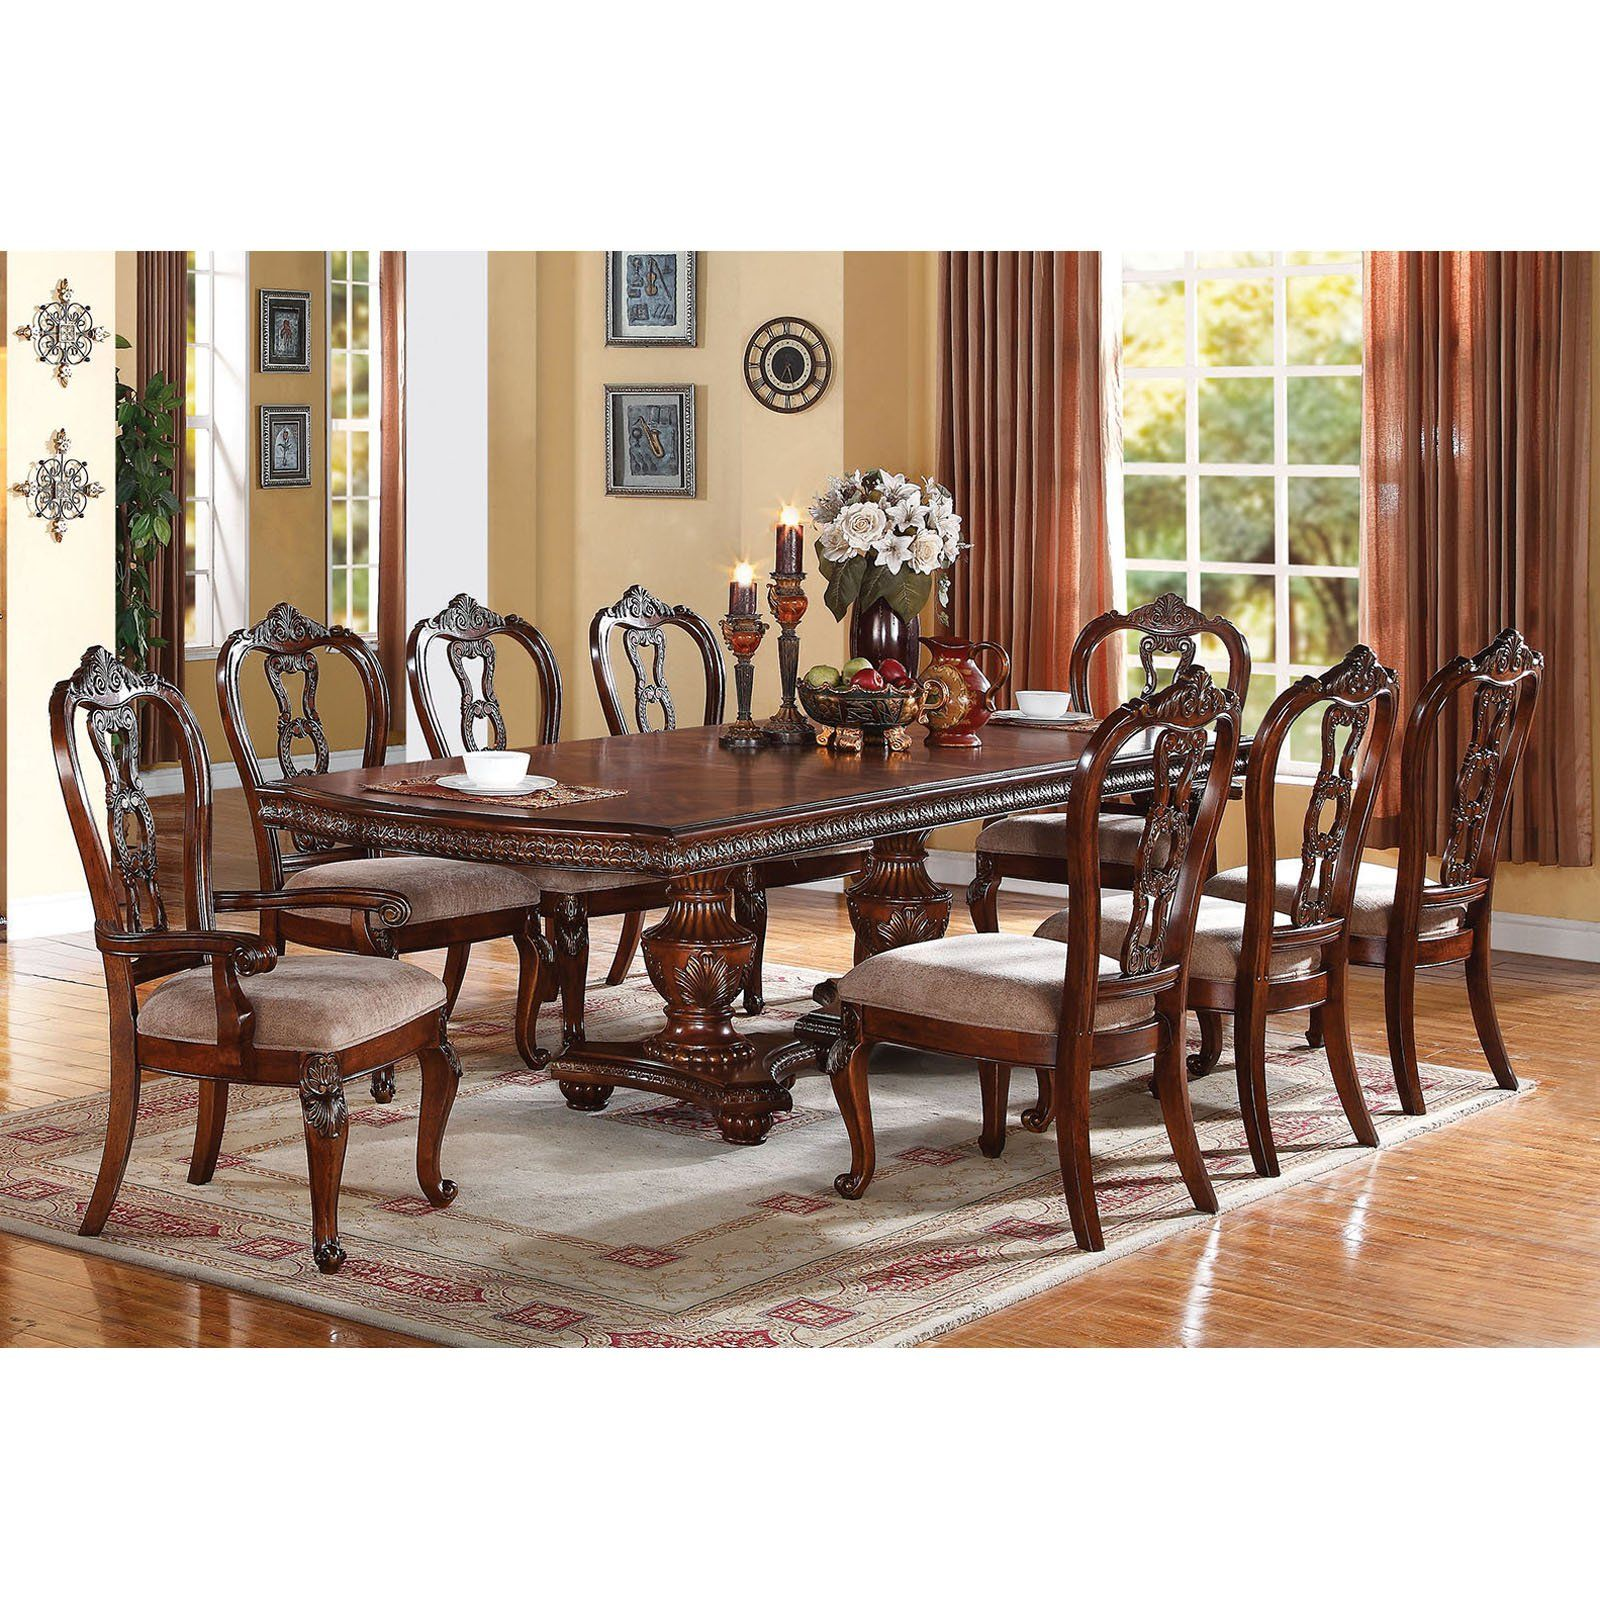 Acme Furniture Nathaneal 9 Piece Rectangular Dining Table Set Acm964 Double Pedestal Dining Table Dining Table Rectangular Dining Table